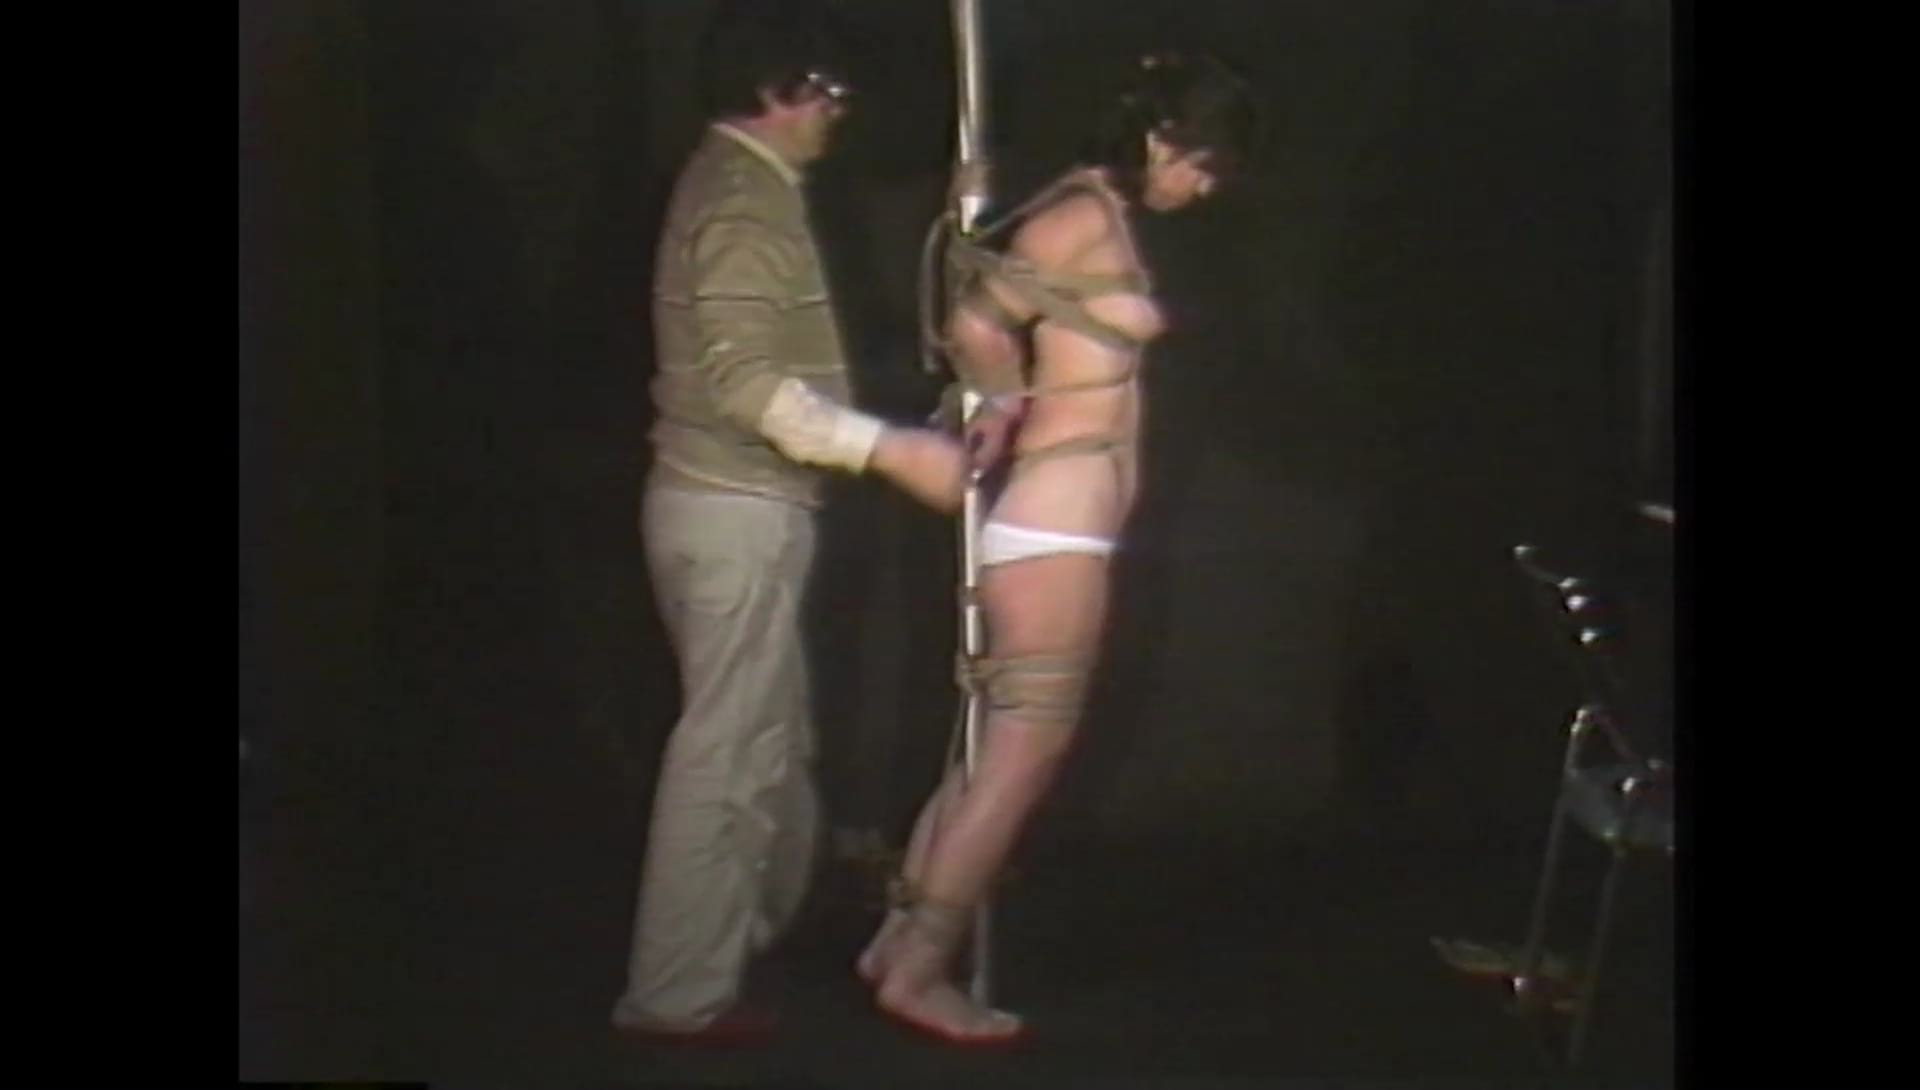 Nureki: Introductory Guide for Shibari No. 4 Japanese Bondage